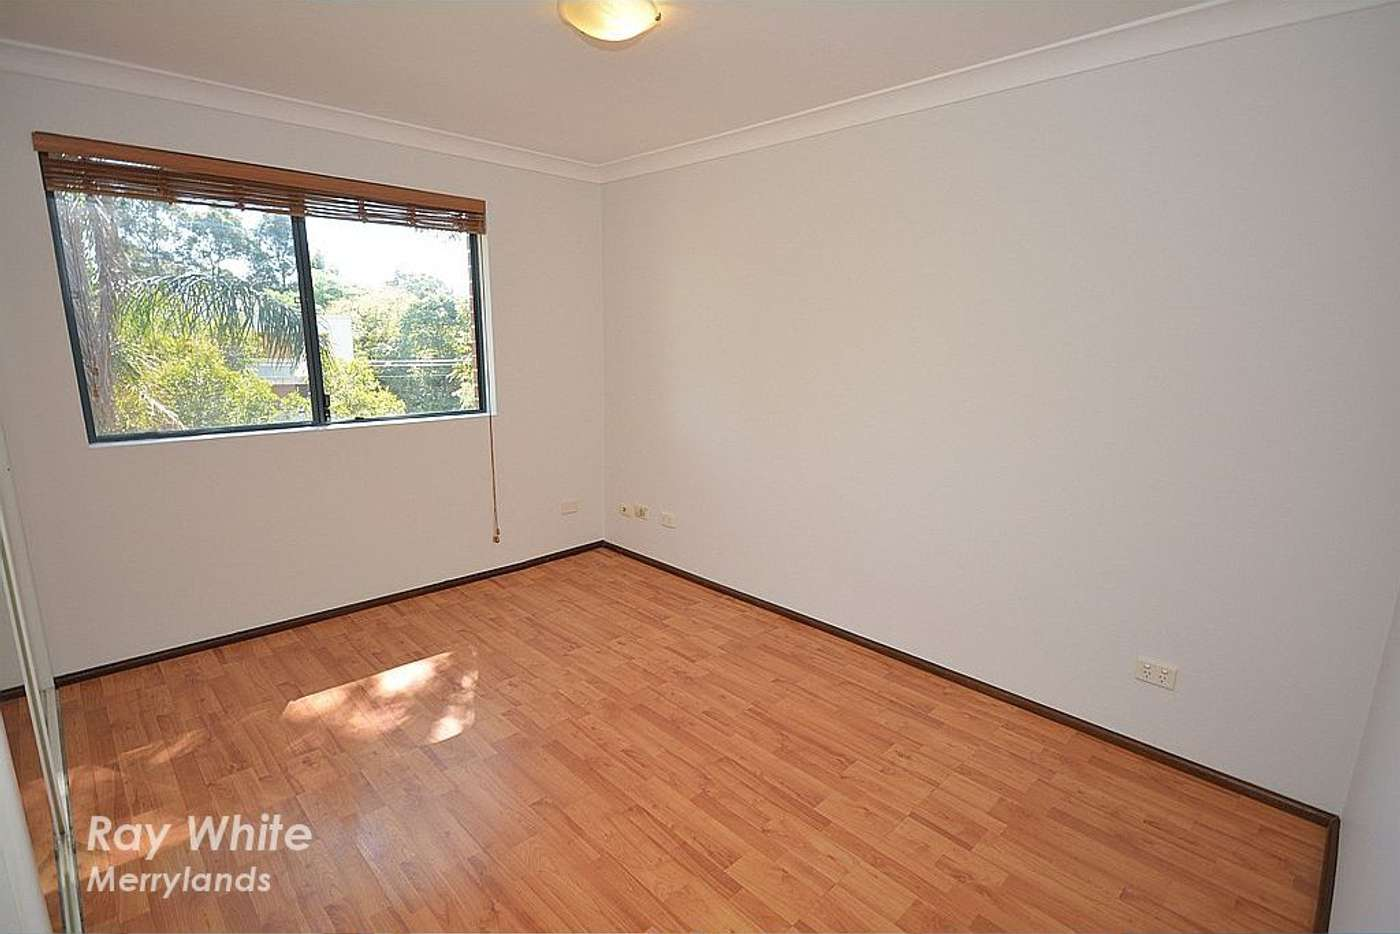 Seventh view of Homely unit listing, 6/14-16 Paton Street, Merrylands NSW 2160